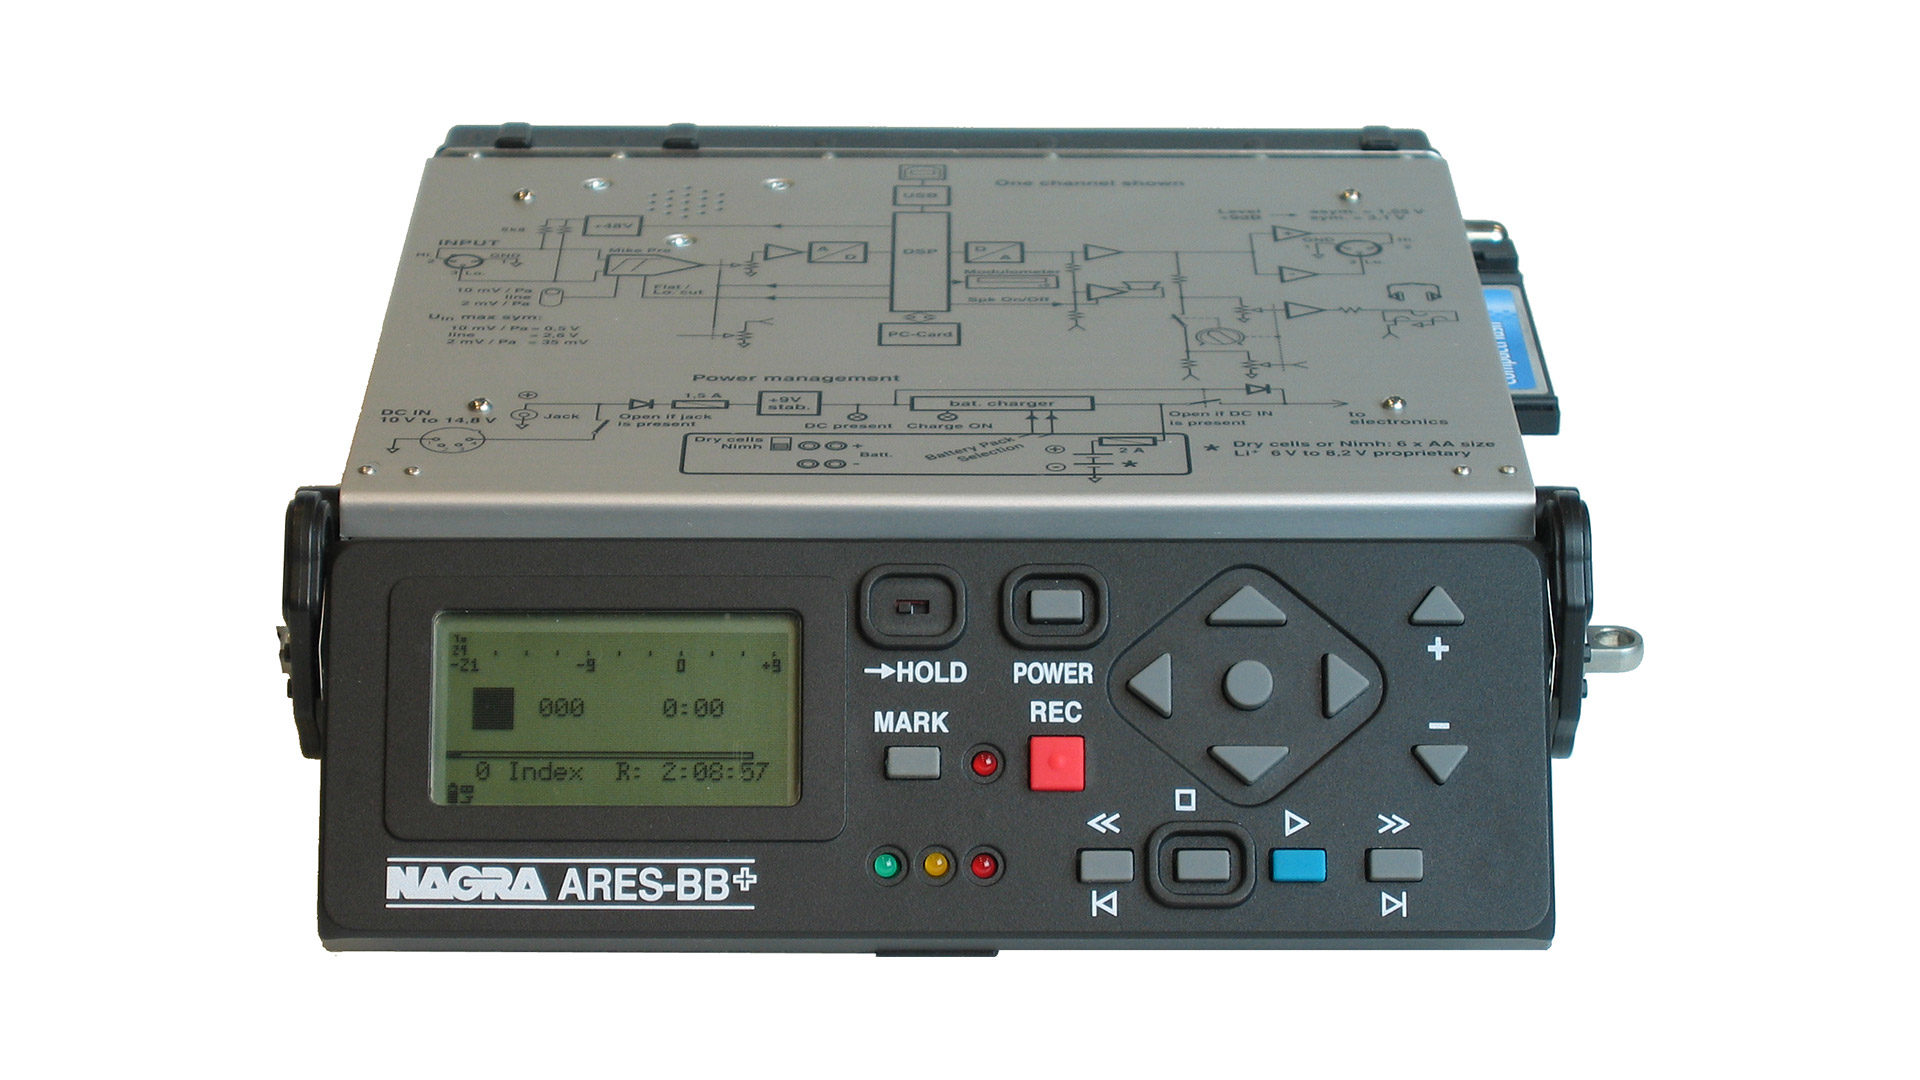 Nagra ares bb plus